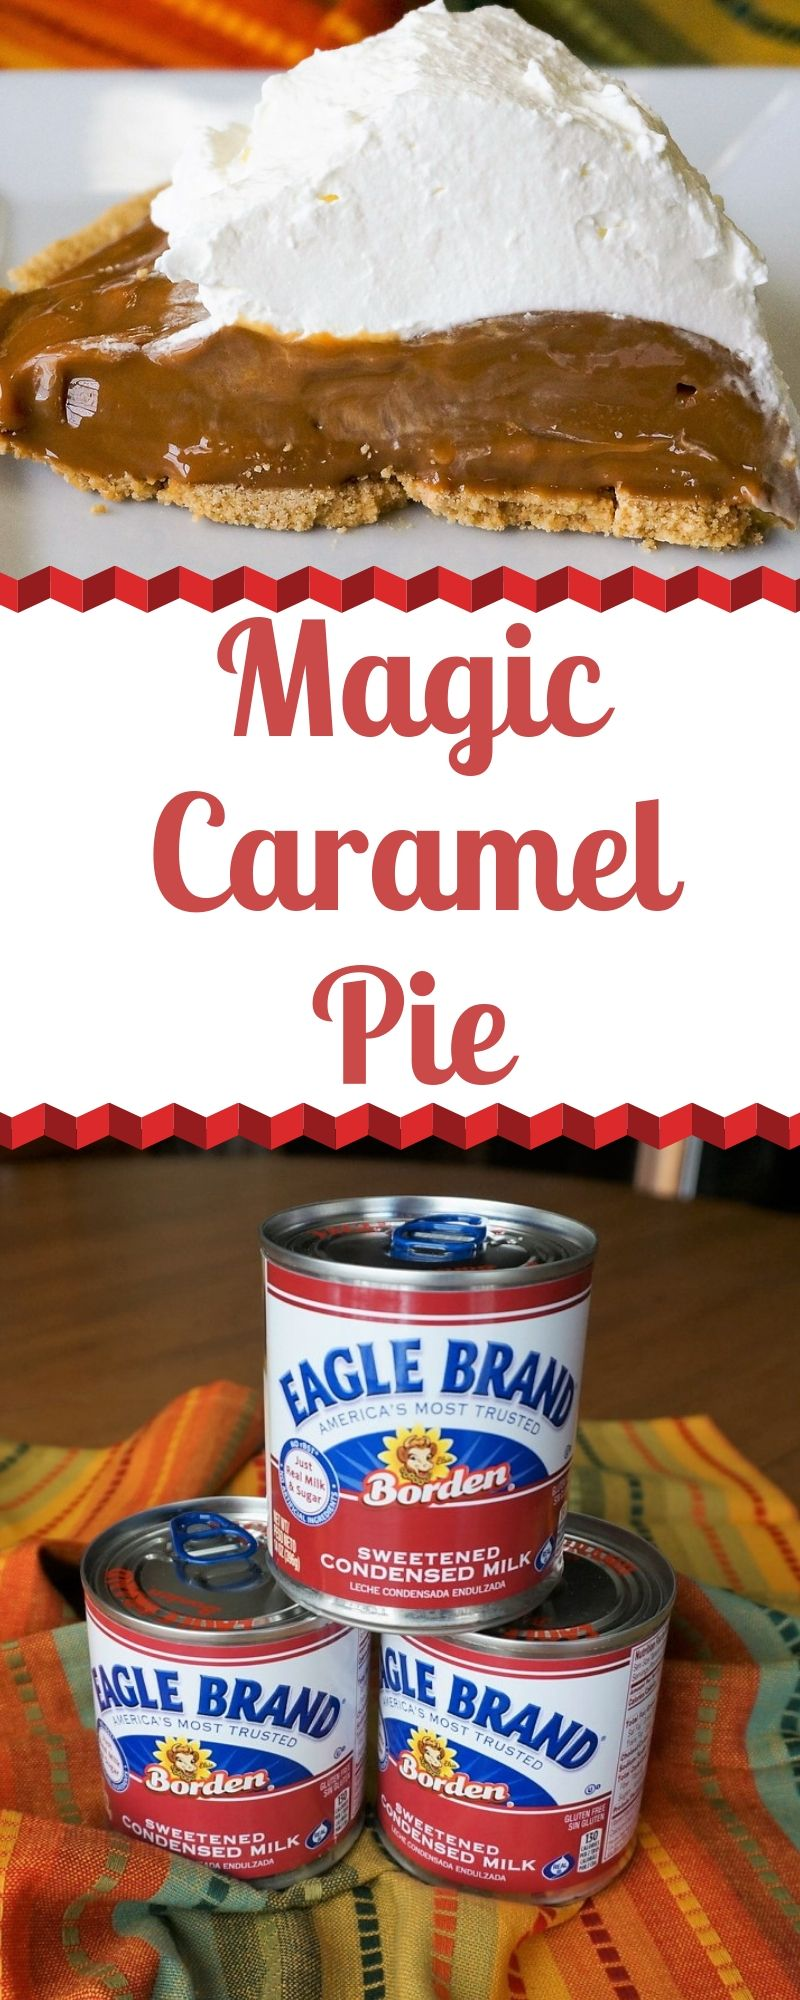 This Magic Caramel Pie recipe utilizes a unique cooking method to make a delicious, mouth-watering